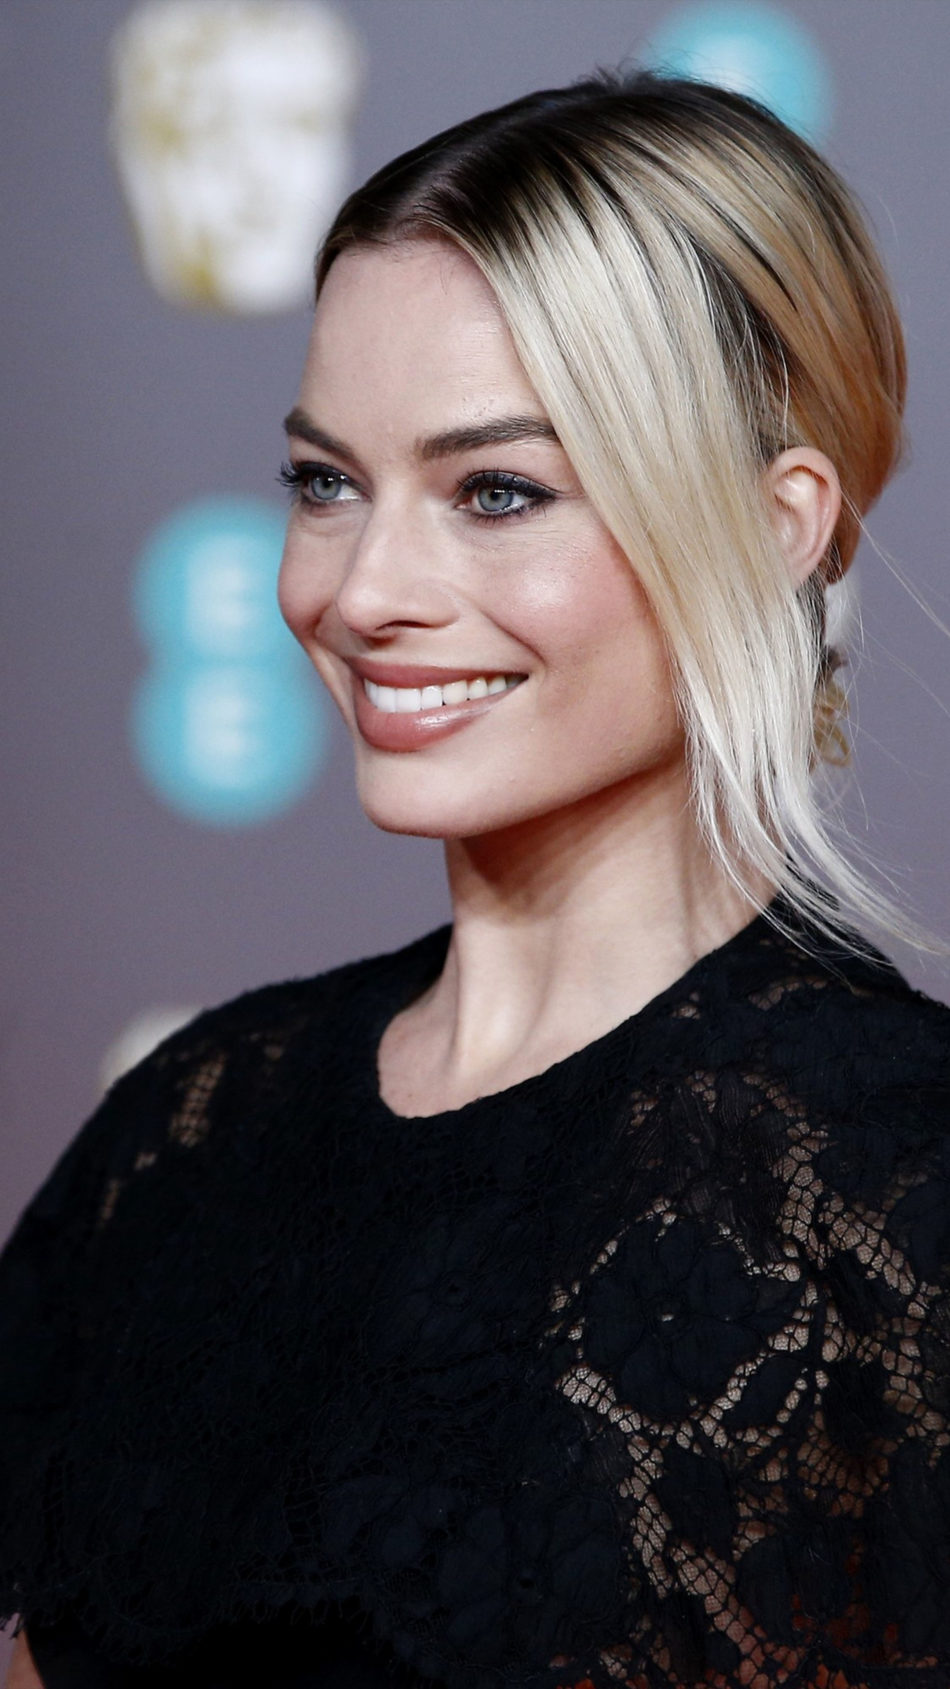 Margot Robbie At Live Show 4K Ultra HD Mobile Wallpaper